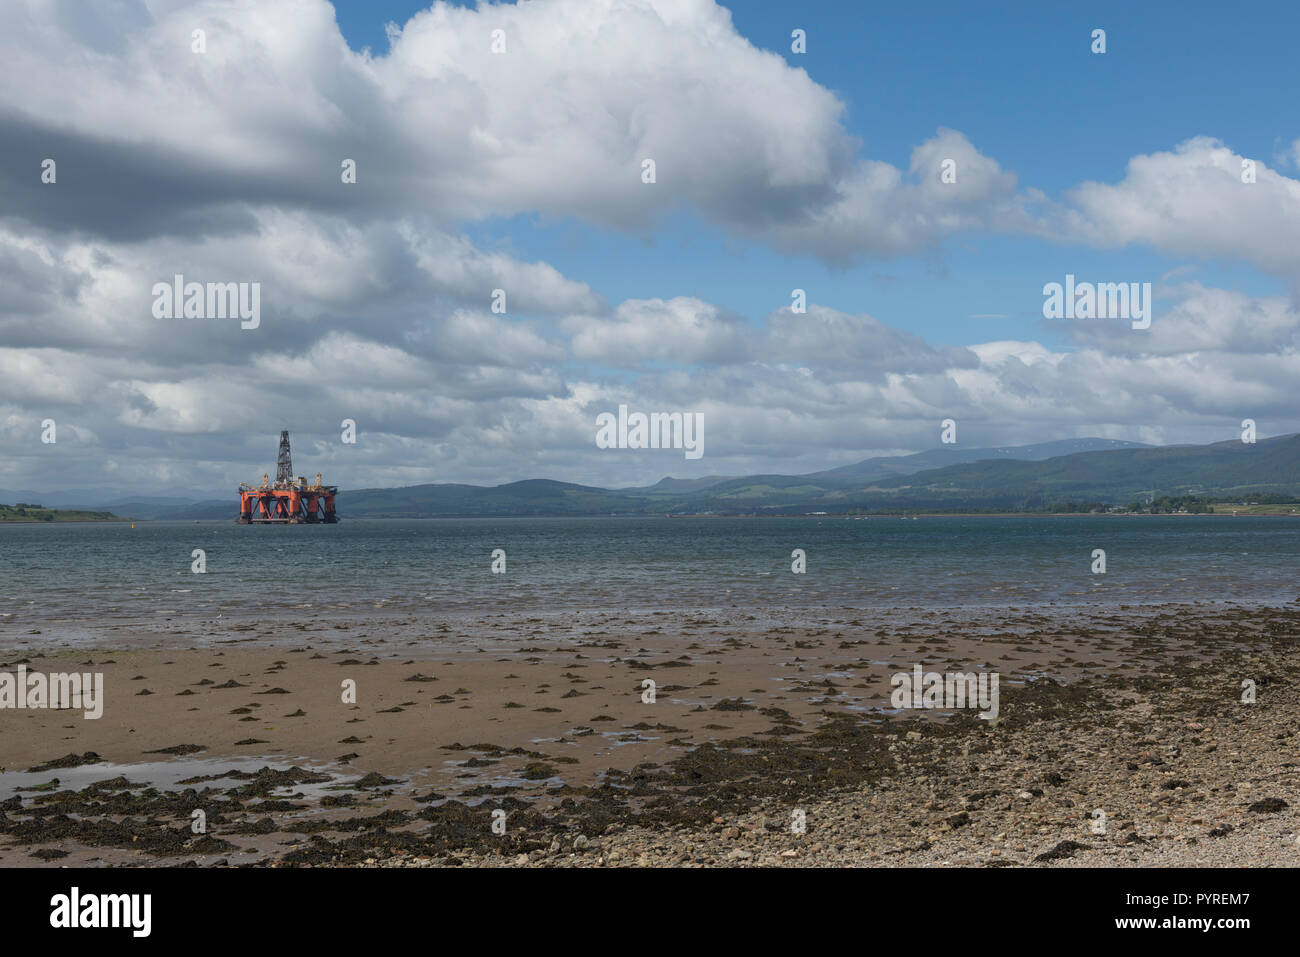 Drilling Rig anchored in Cromarty Firth, Invergordon, Highland, Scotland, UK - Stock Image